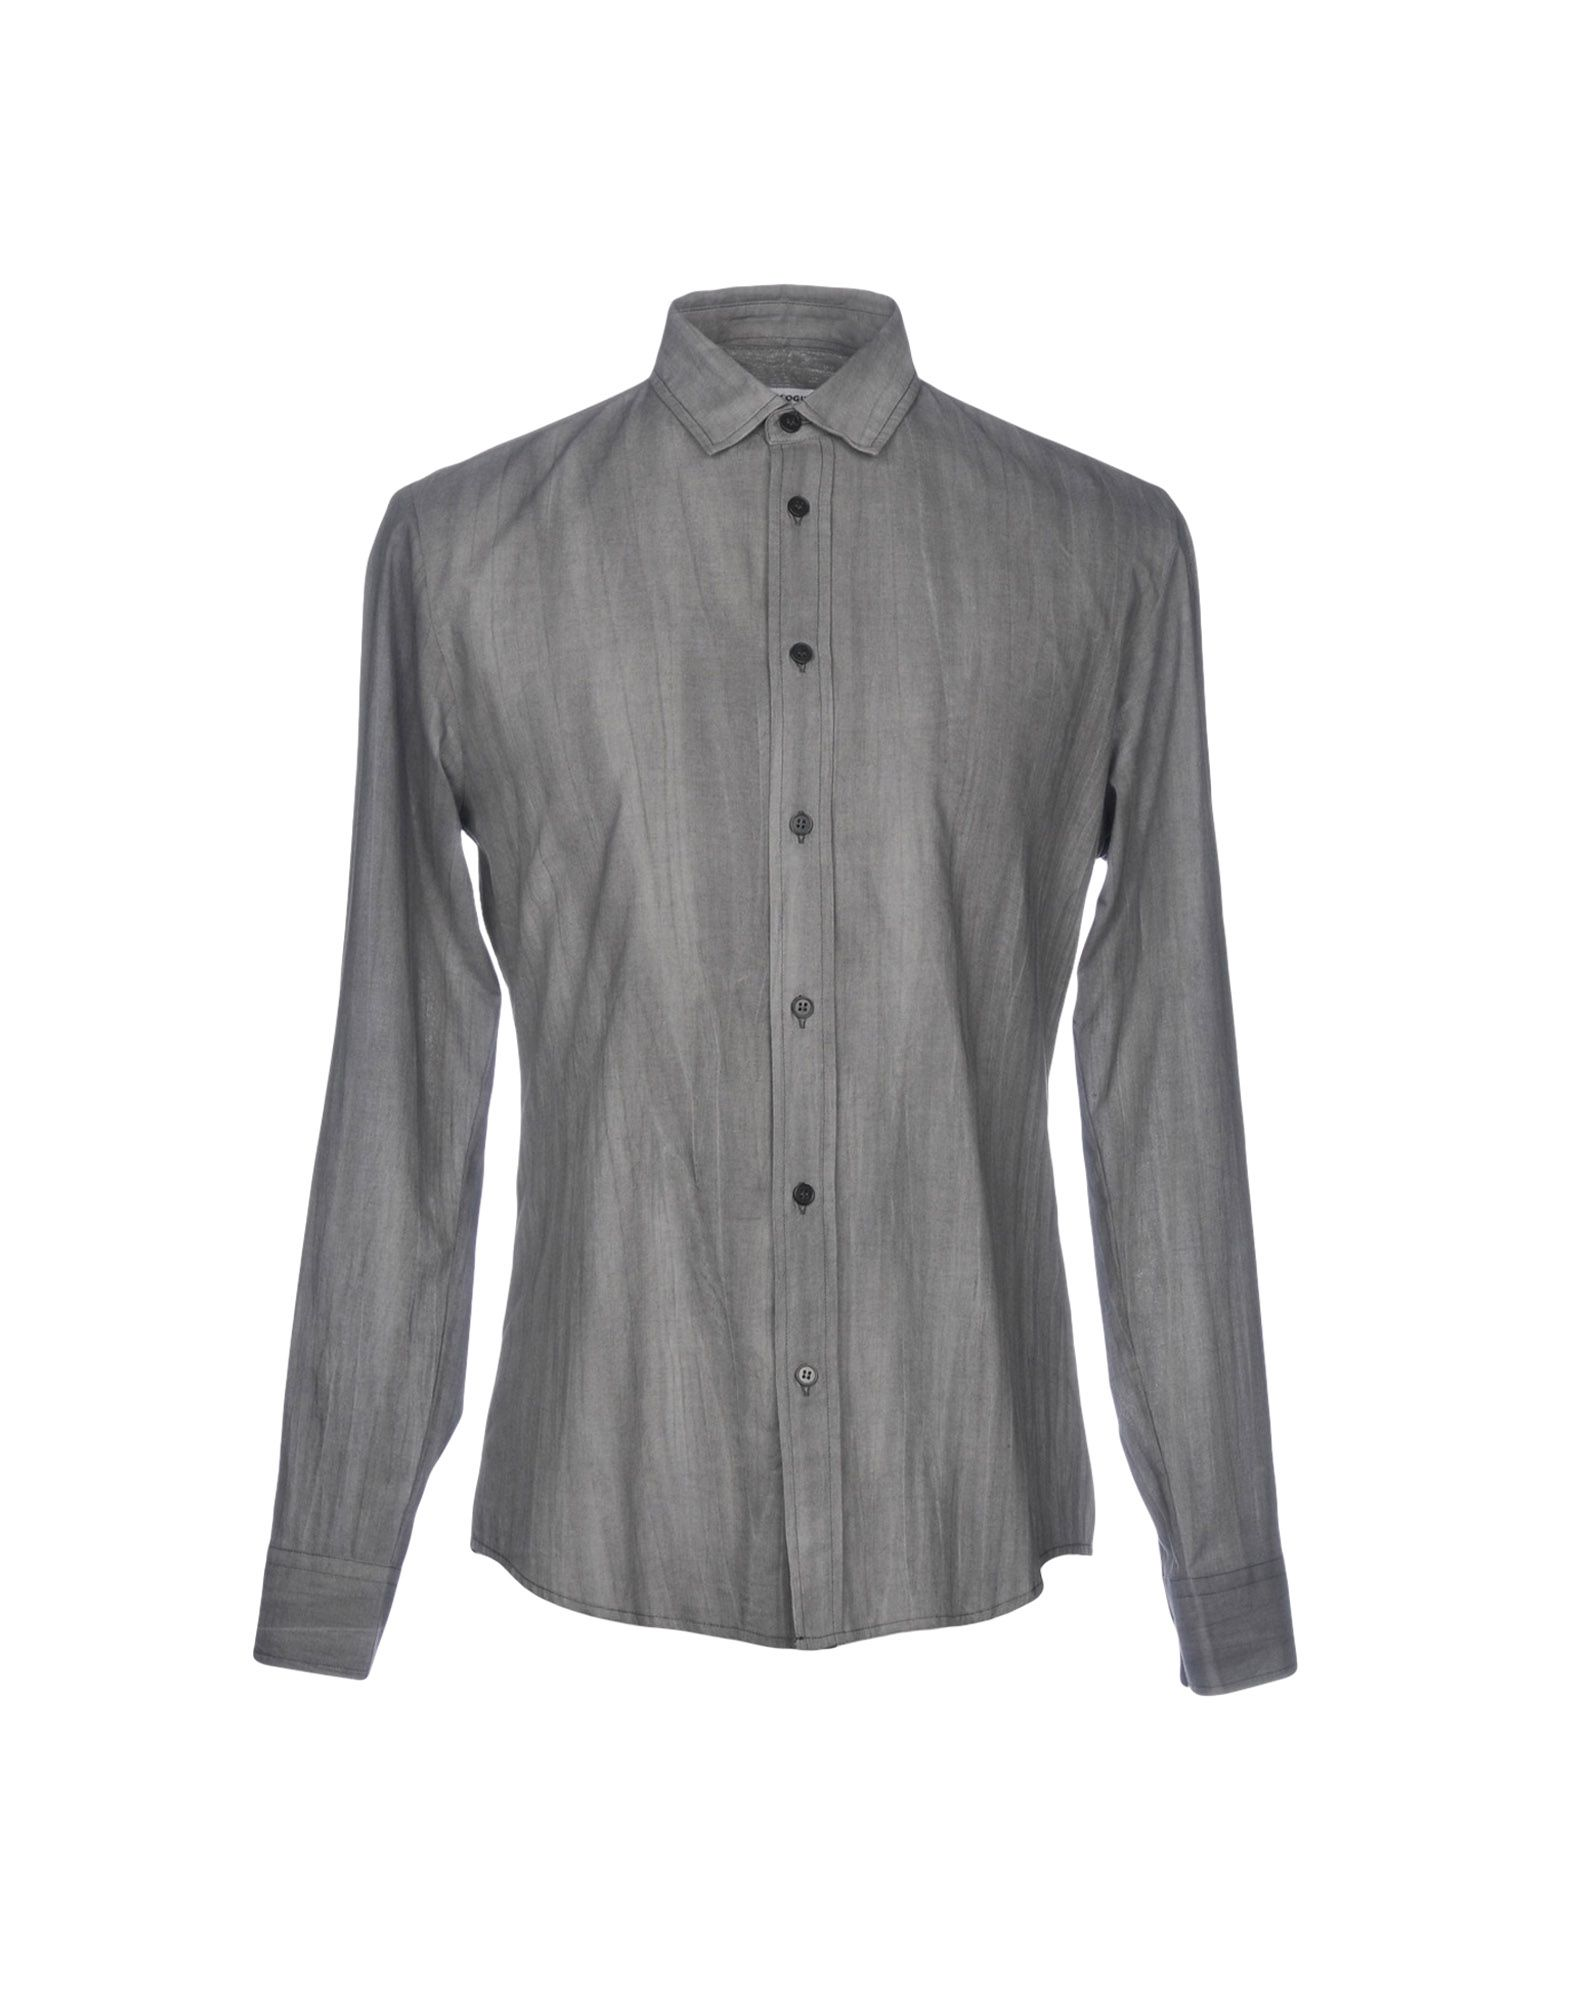 ALL APOLOGIES Solid Color Shirt in Grey